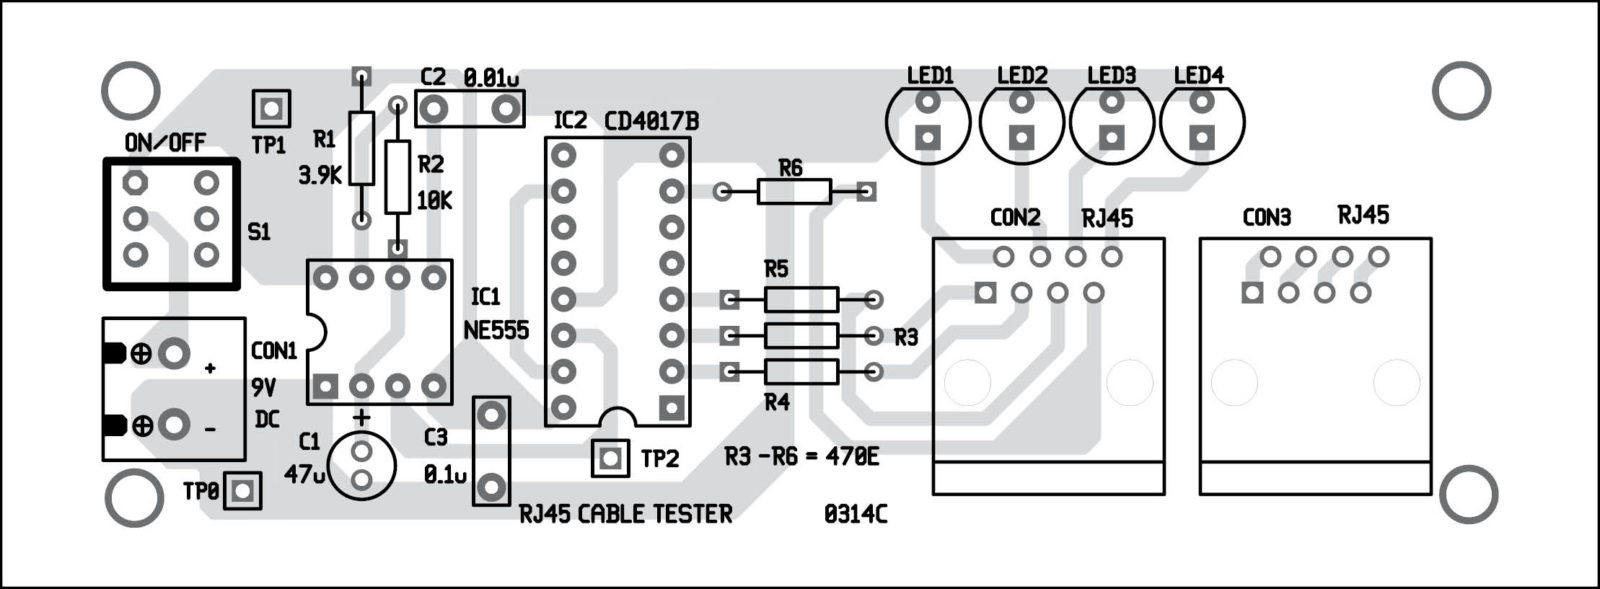 Rj45 Cable Tester Detailed Circuit Diagram Available Crossover Utilizes Two Different Pinouts For The Ends Fig 4 Component Layout Pcb